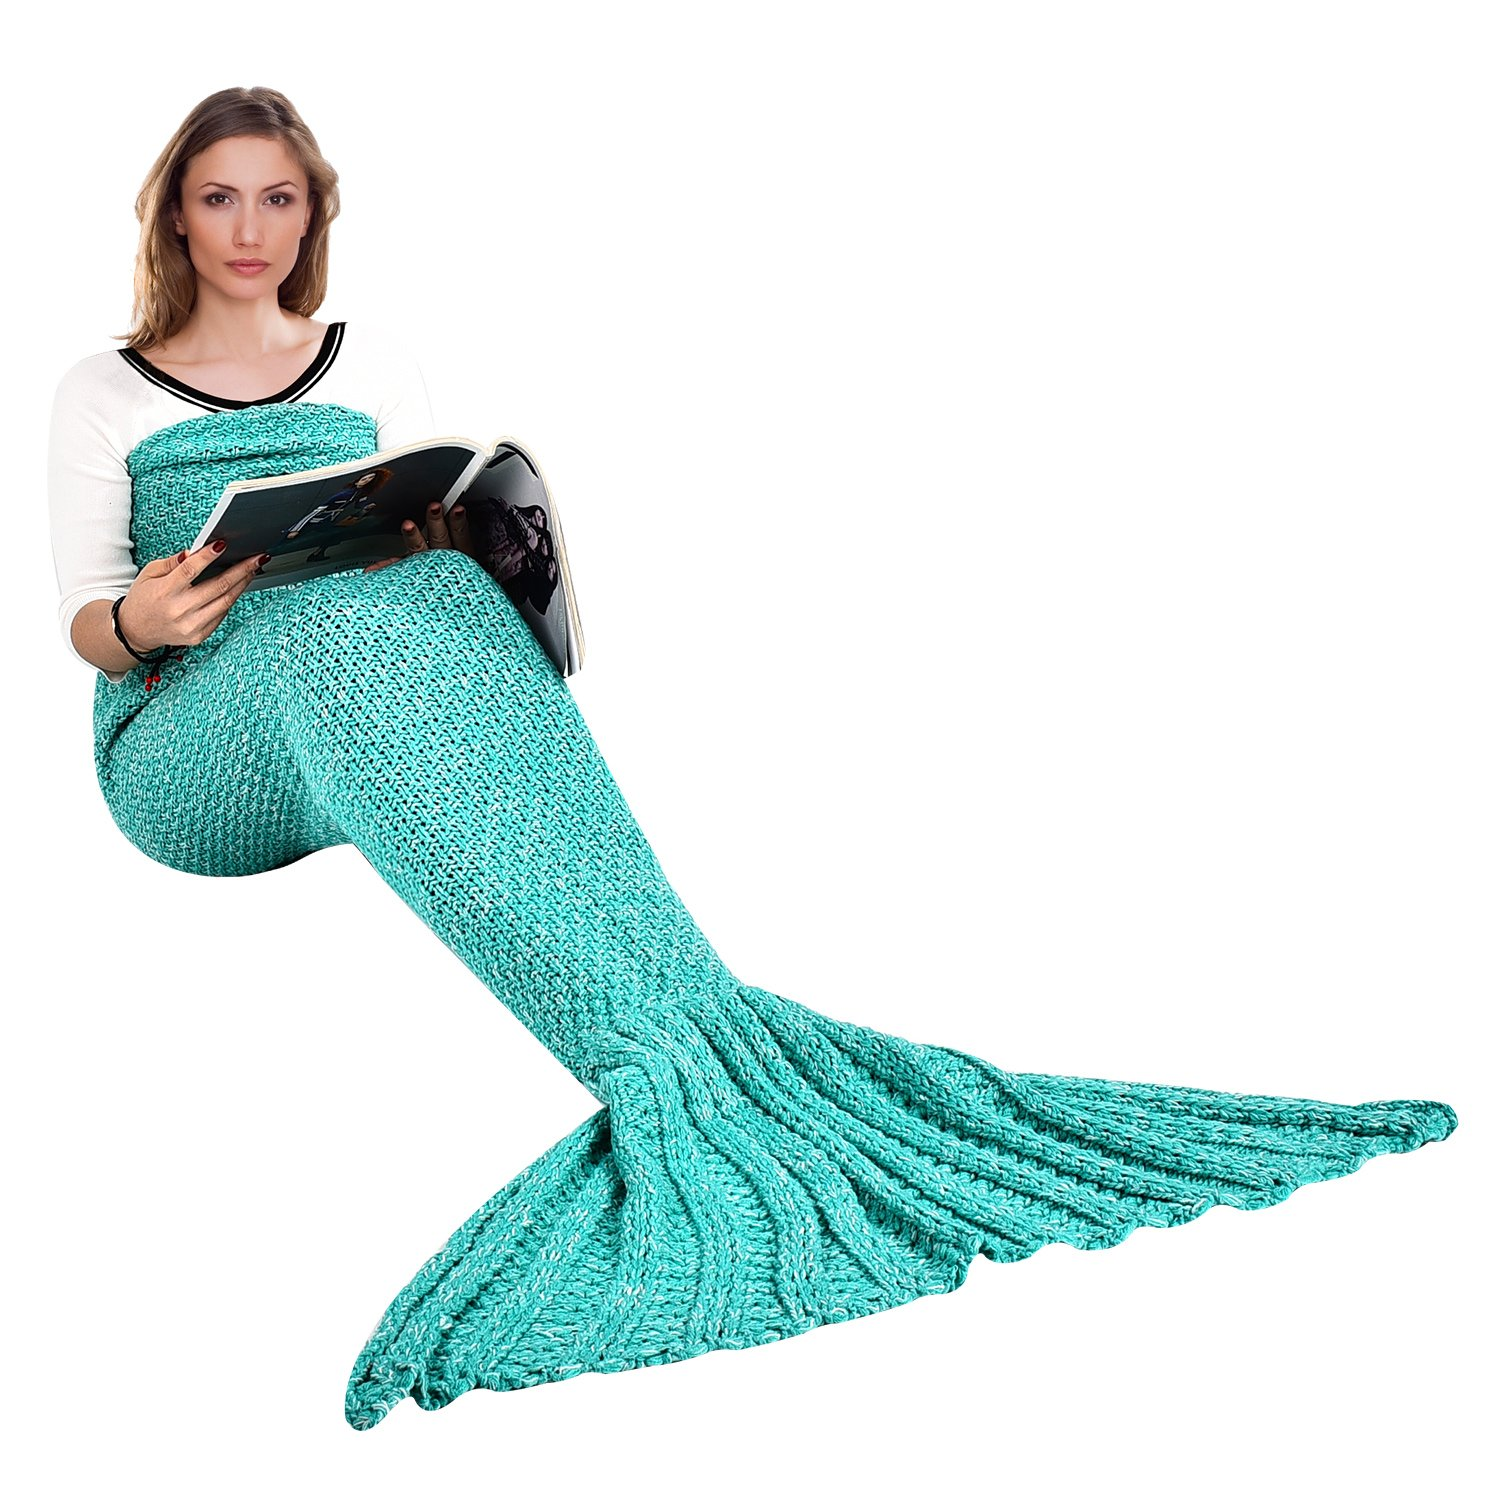 iBaby888 Wearable Mermaid Tail Blanket Crochet, All Seasons Warm Knitted Bed Blanket Sofa Quilt Living Room Sleeping Bag for Kids and Adults, Big Tail, 70.9'' x 35.5'' (180 x 90cm), Green by iBaby888